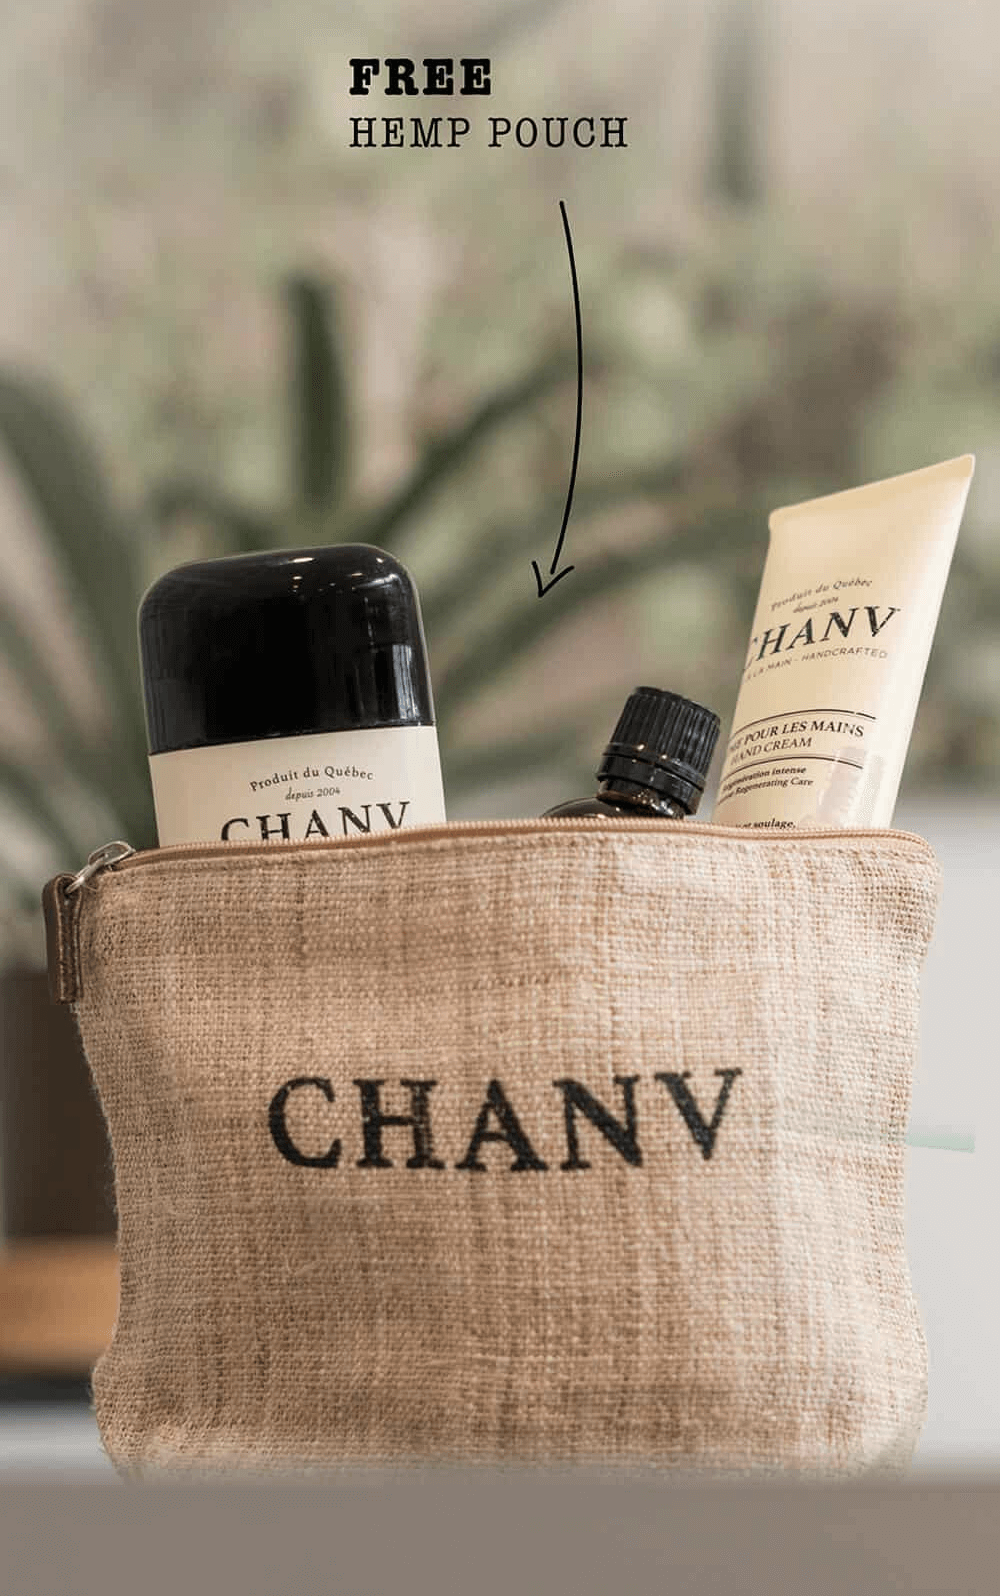 Hemp Pouch Chanv